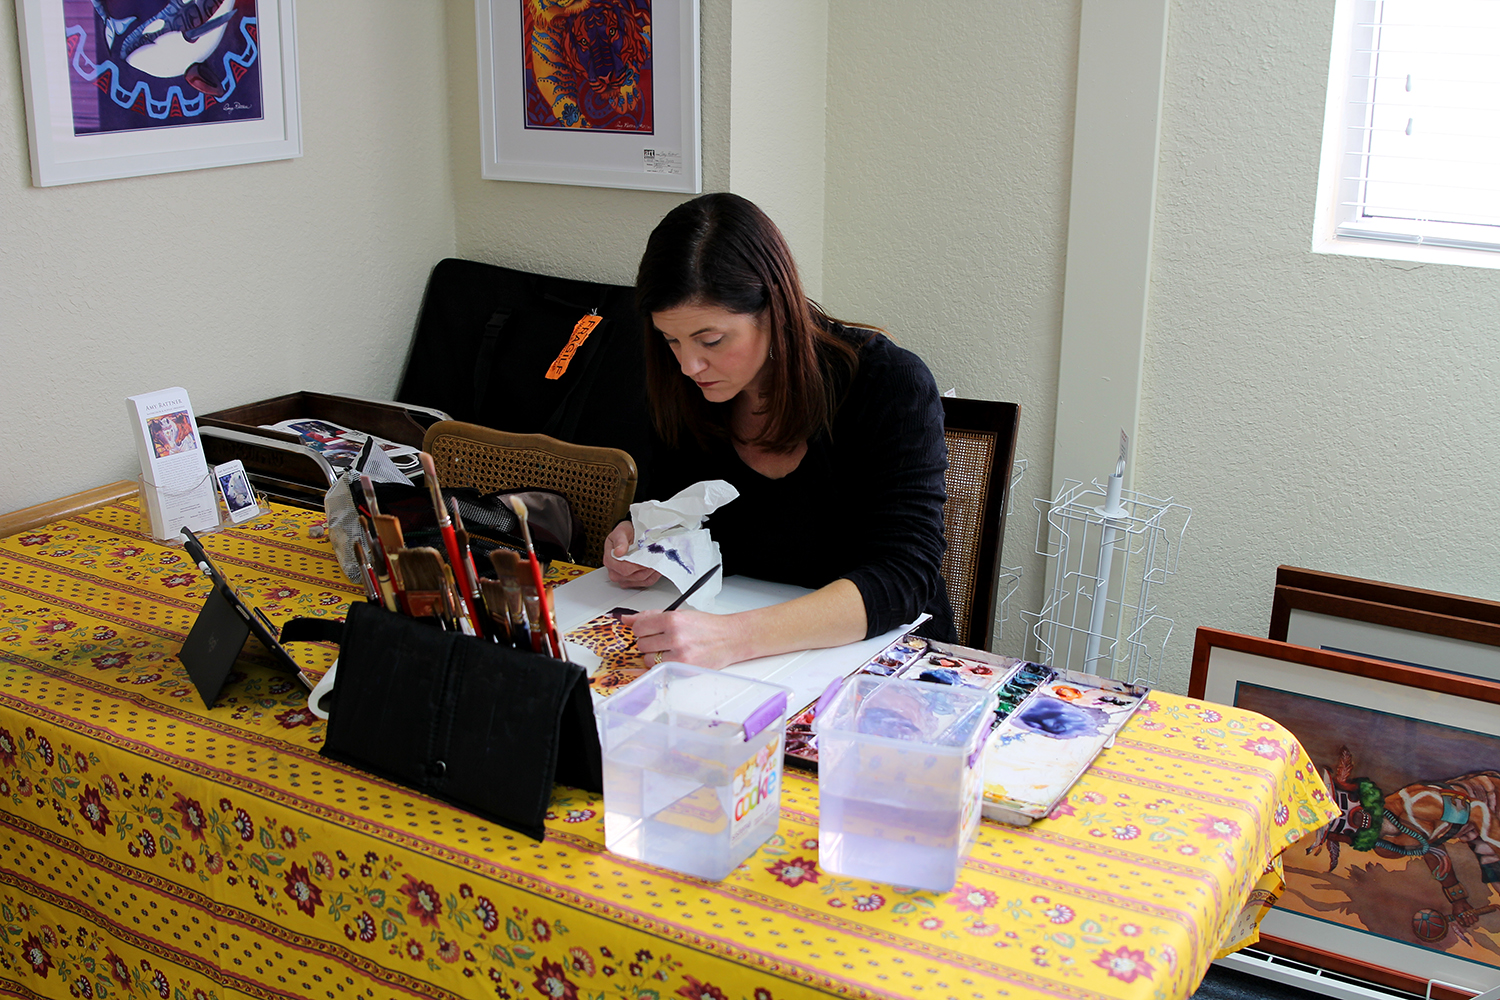 New UGallery artist Amy Rattner working with watercolors in her studio.